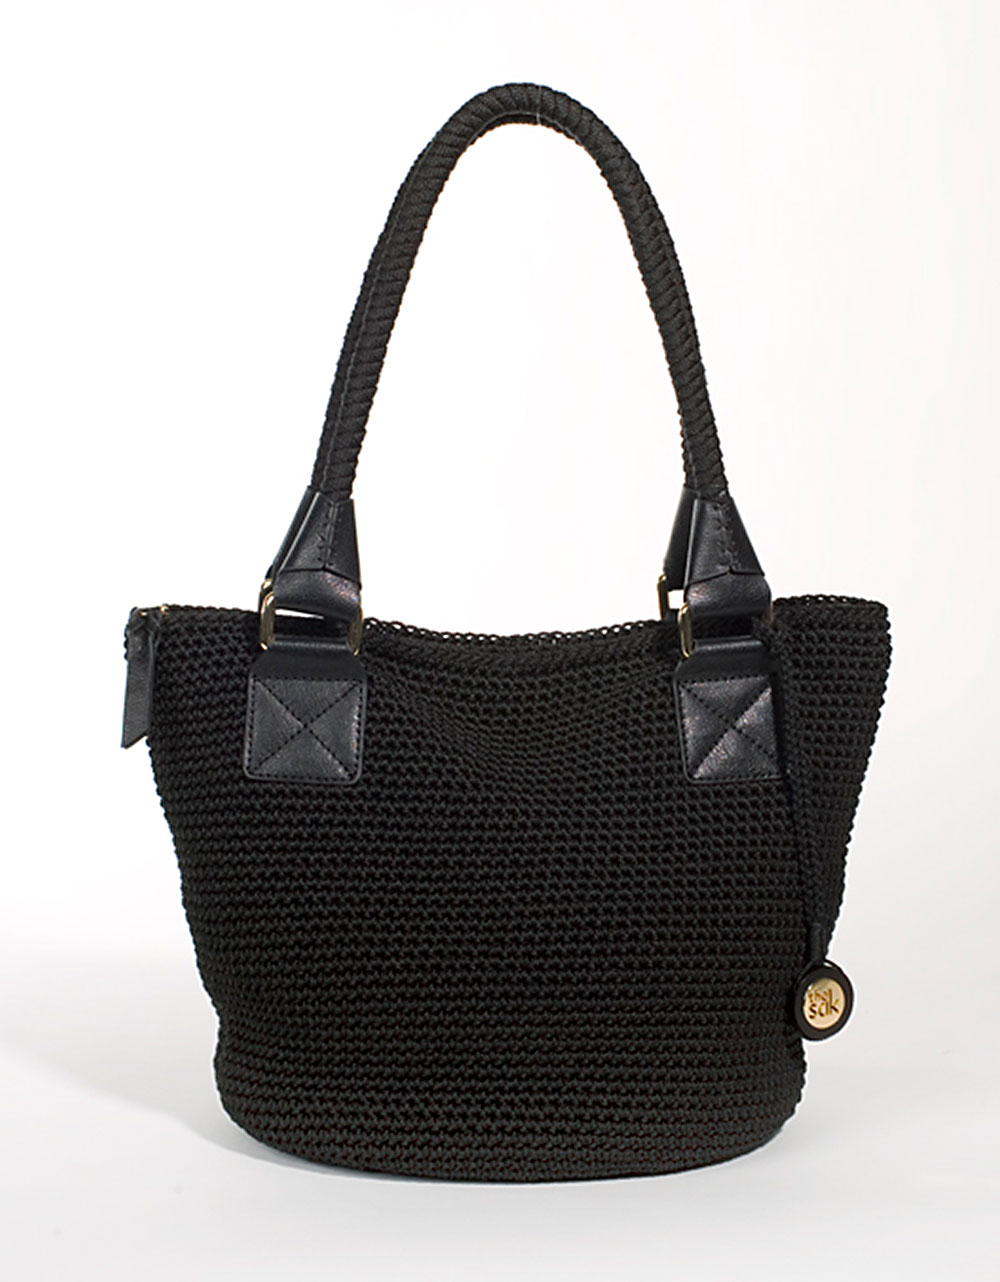 Crochet Bucket Bag : The Sak Cambria Crochet Bucket Tote Bag in Black Lyst